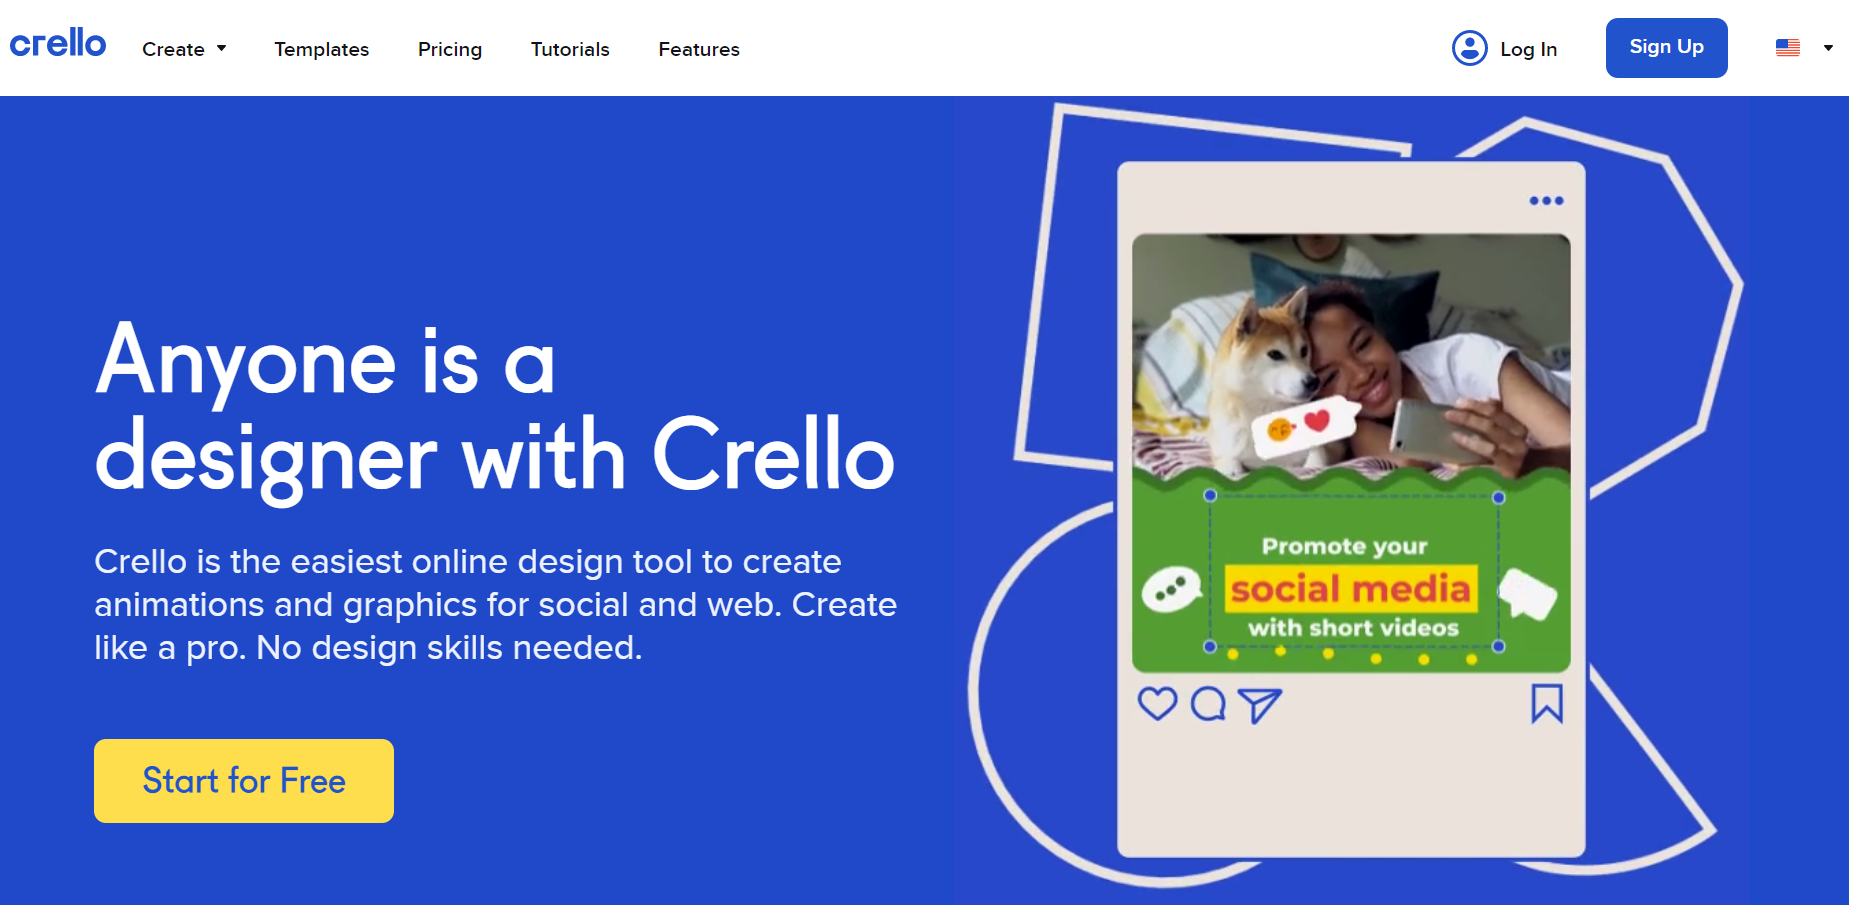 The Simplest Online Image Editor - crello